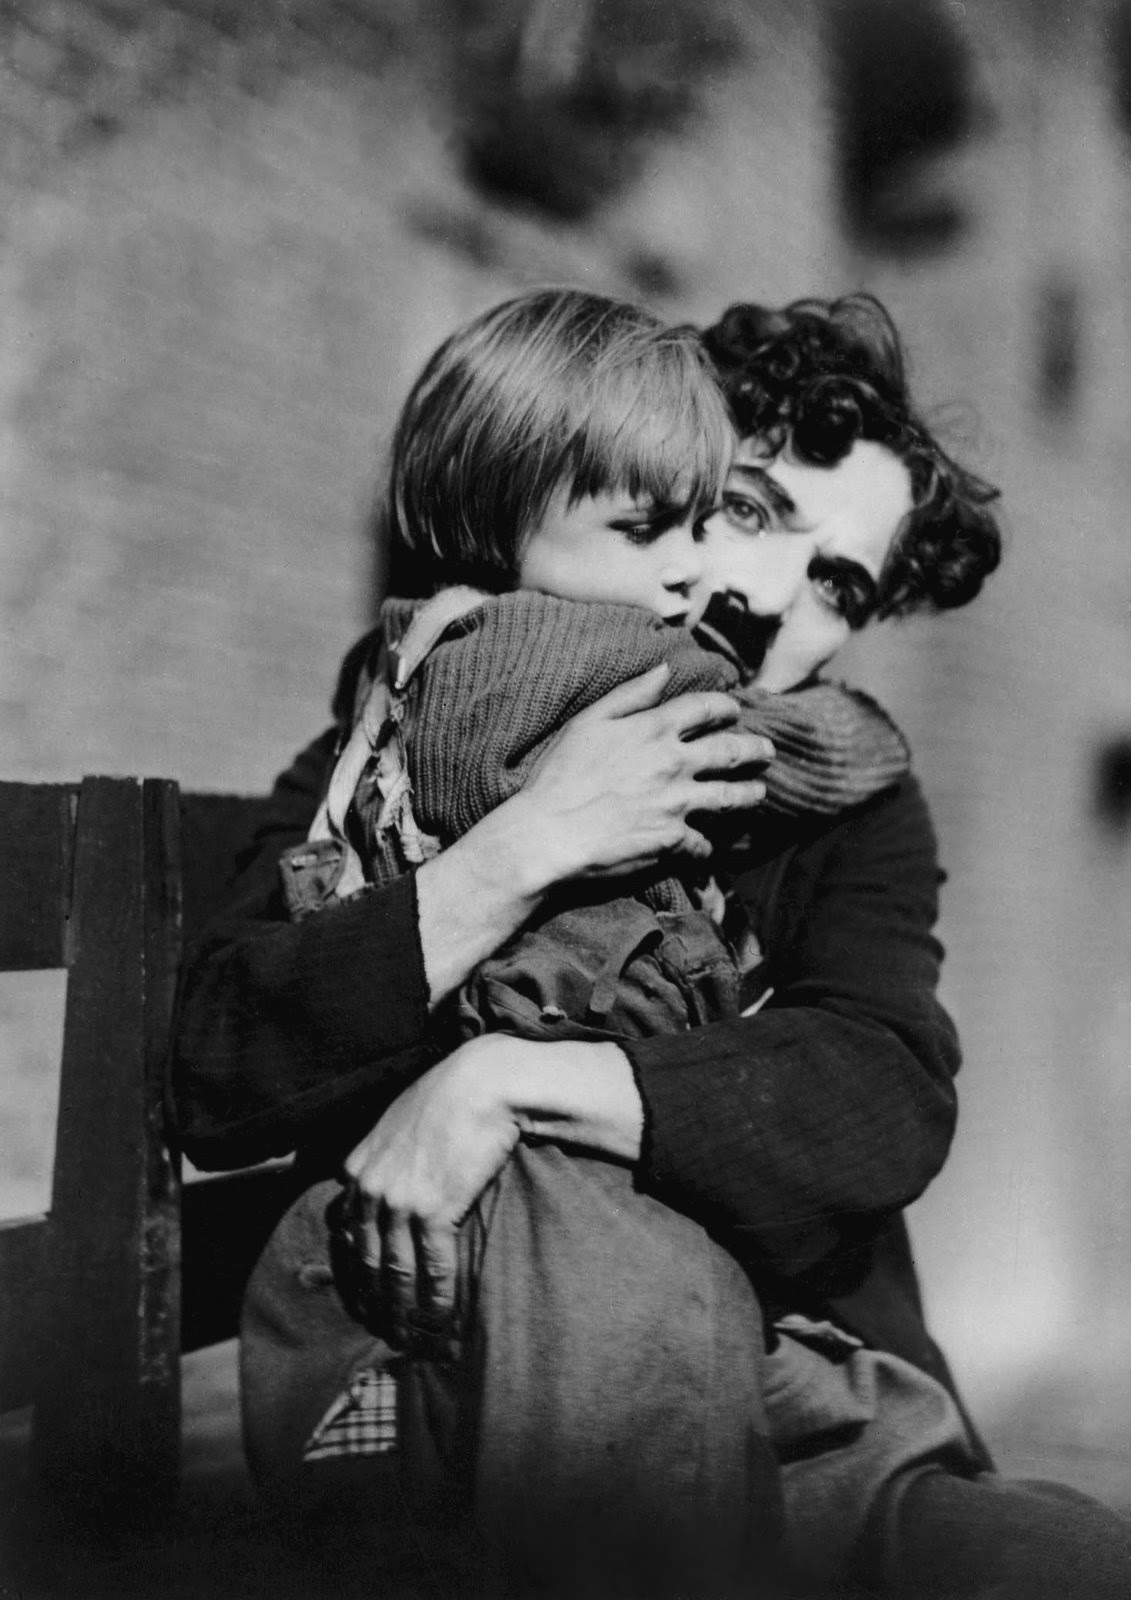 a review of the kid by charlie chaplin Desperate, edna leaves her child in a limo with a note - she's going to kill herself  charlie rescues the child and cares for it, but five years later.